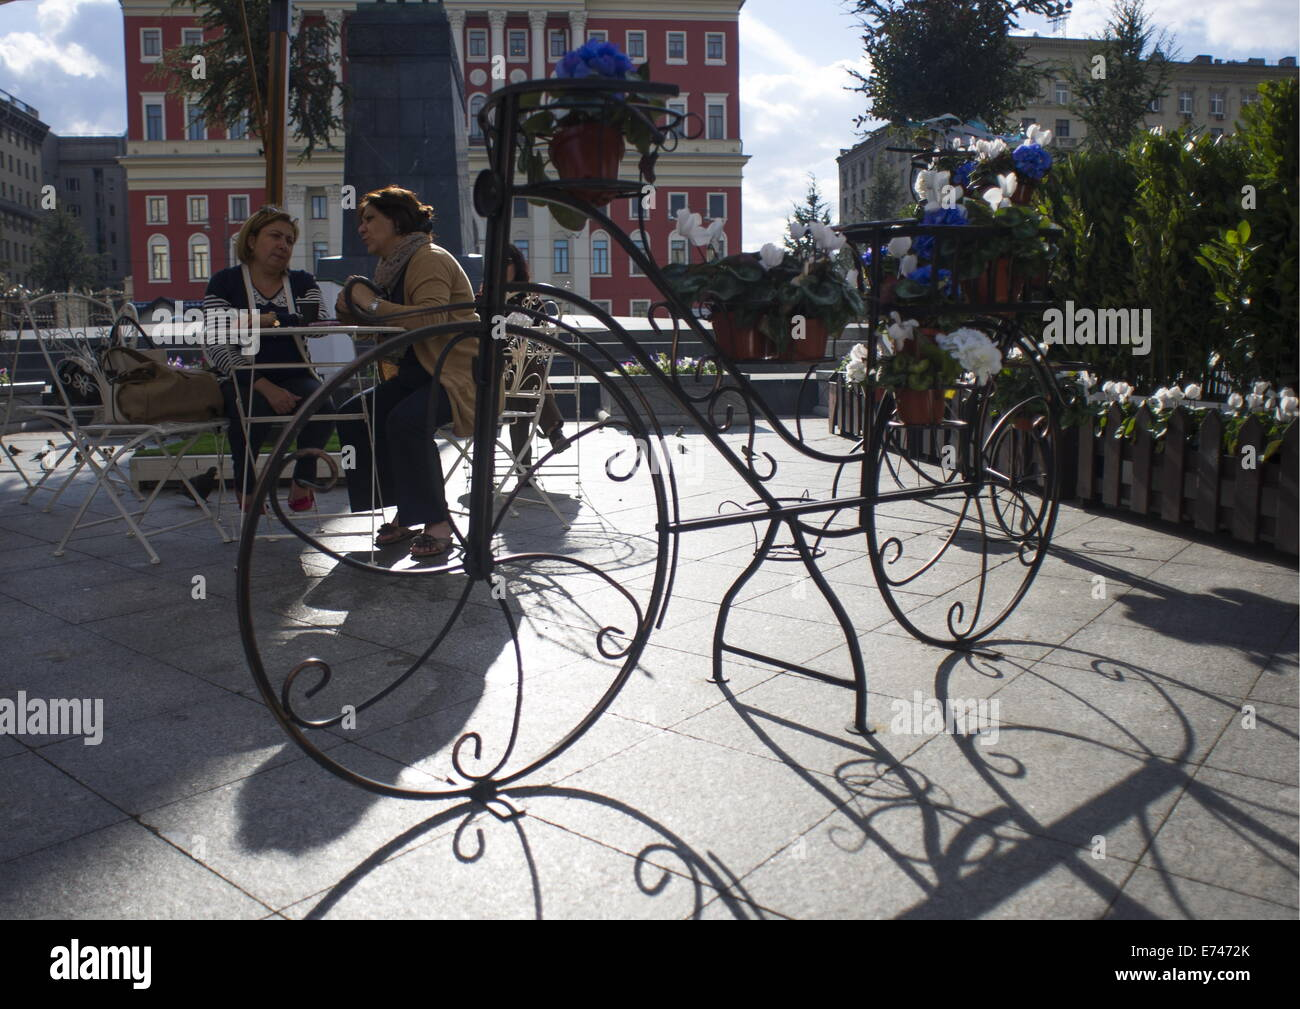 ITAR-TASS: MOSCOW, RUSSIA. SEPTEMBER 4, 2014. Tverskaya Street is decorated ahead of Moscow city day celebration. Stock Photo